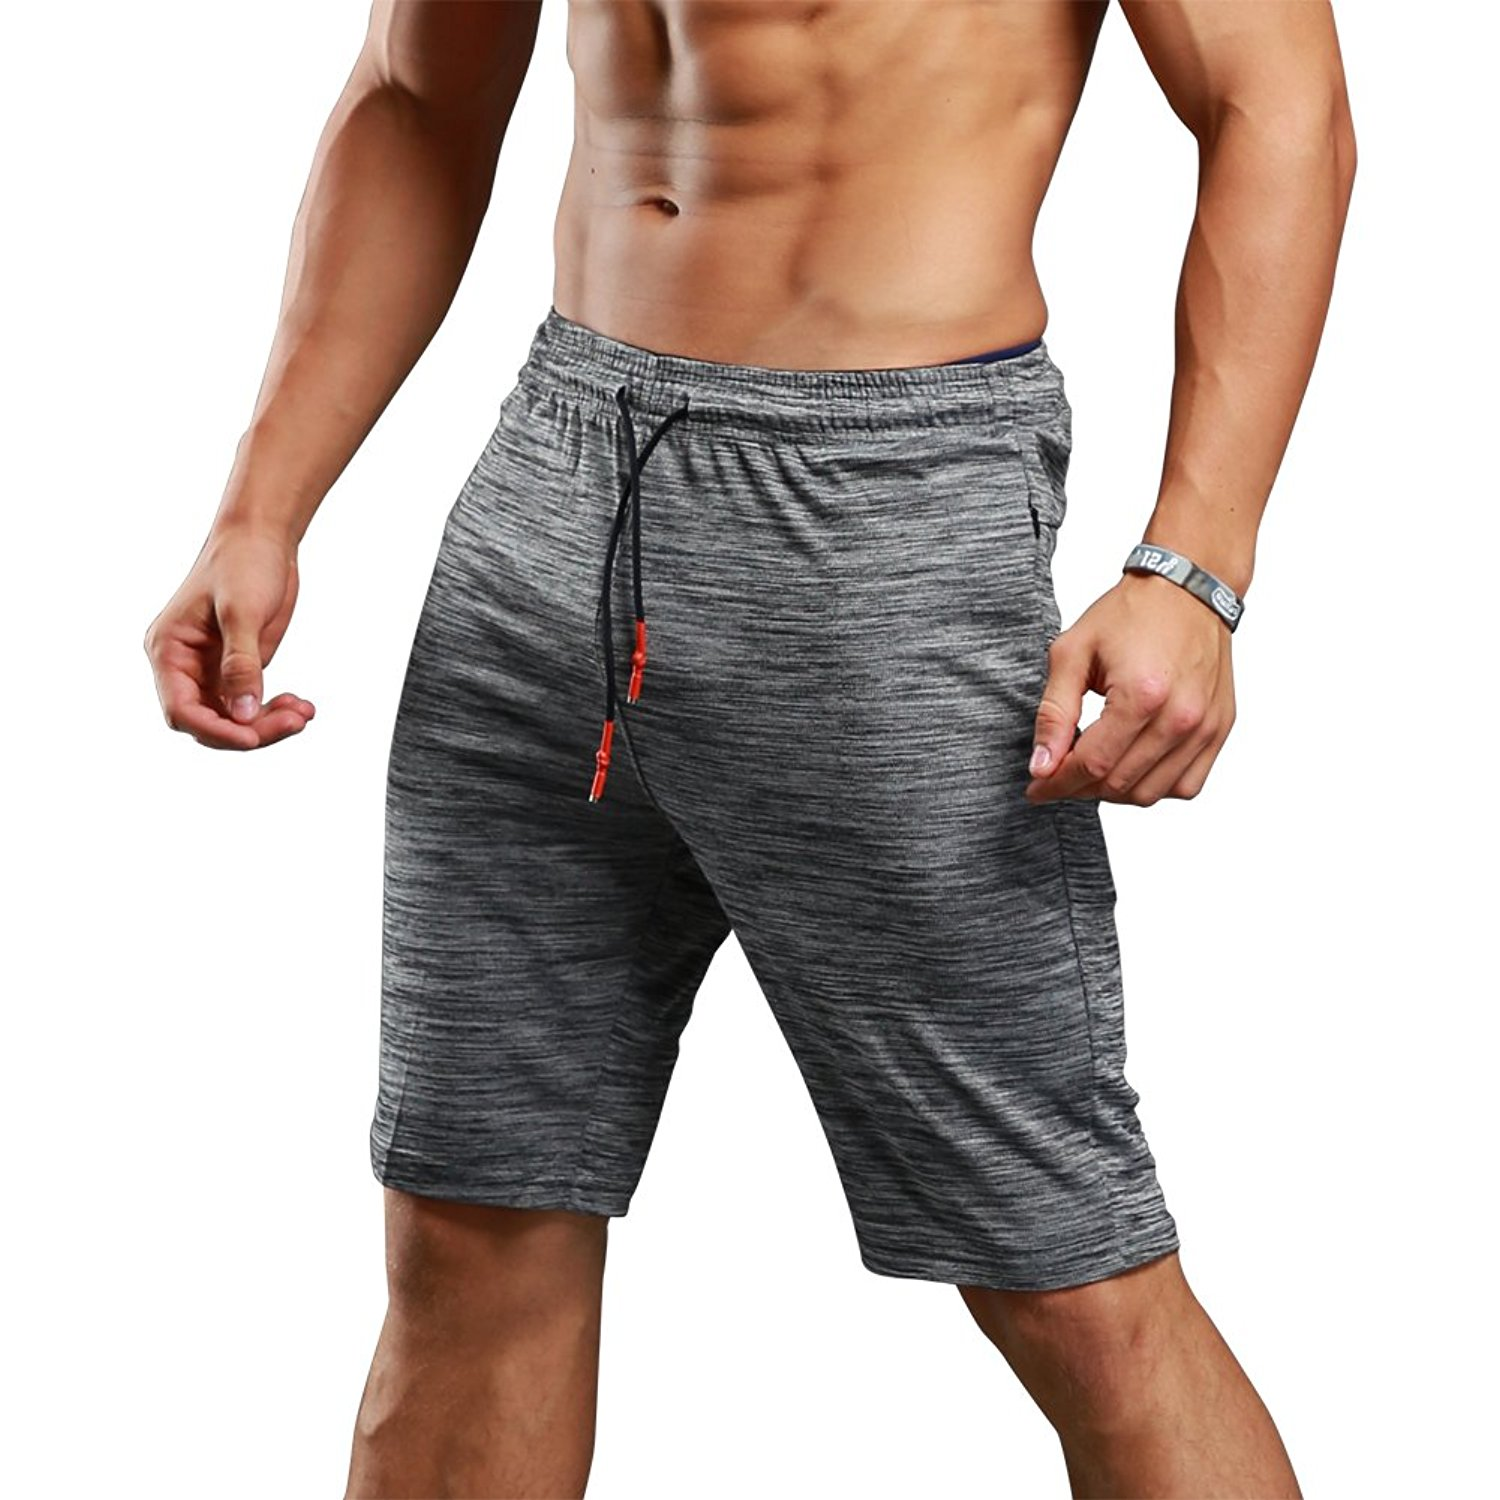 Work Out Shorts for Men